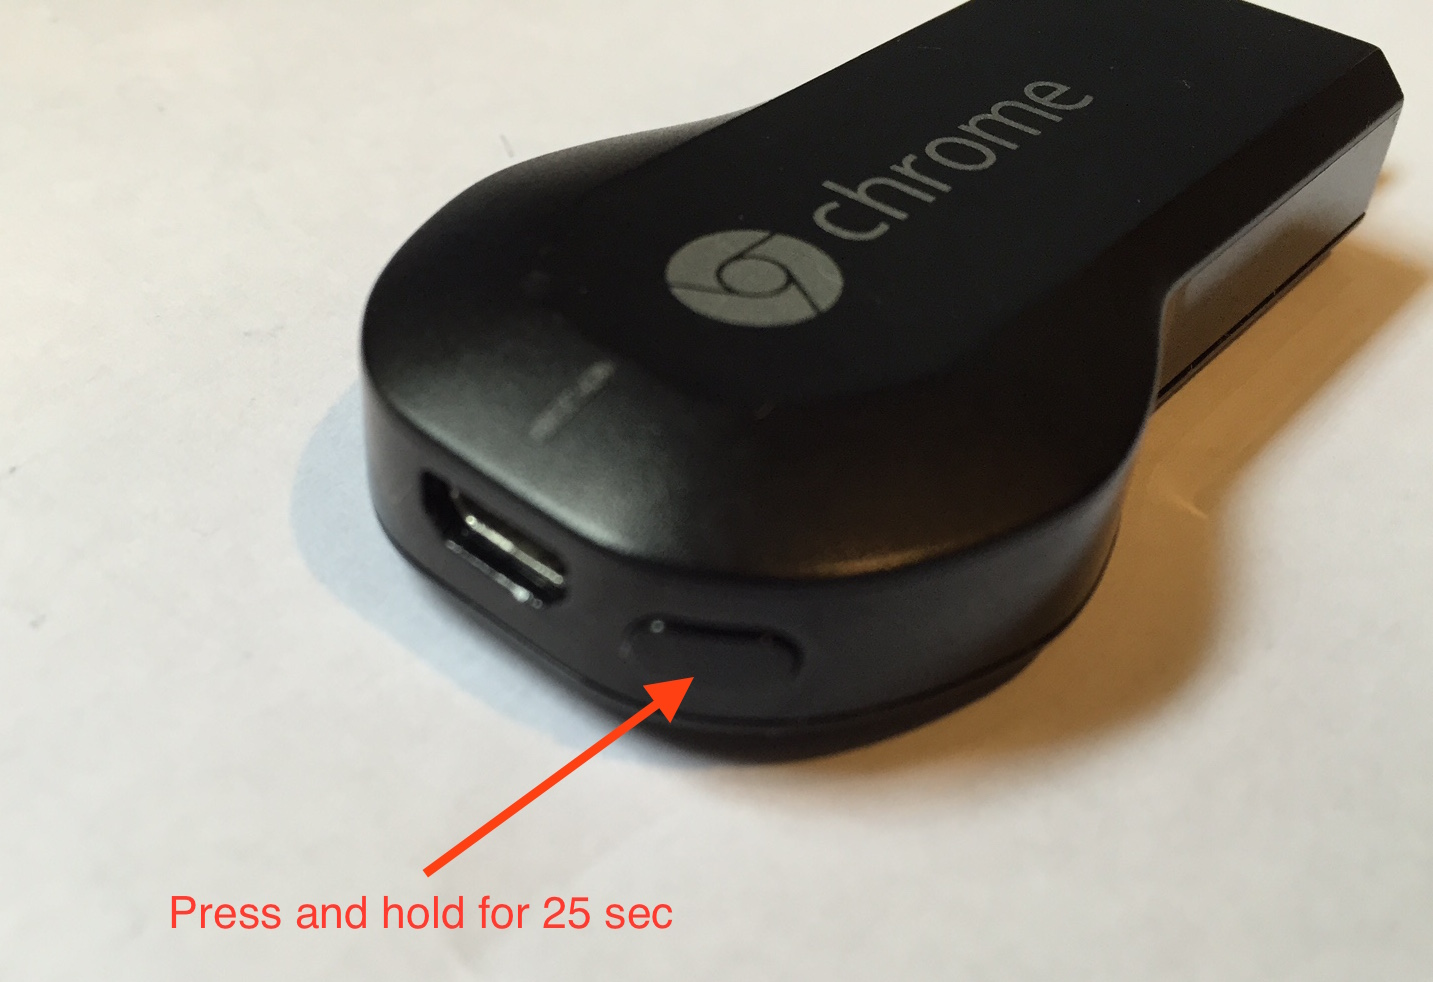 How to Setup Your Chromecast to Hotel WIFI — Big Pie Media